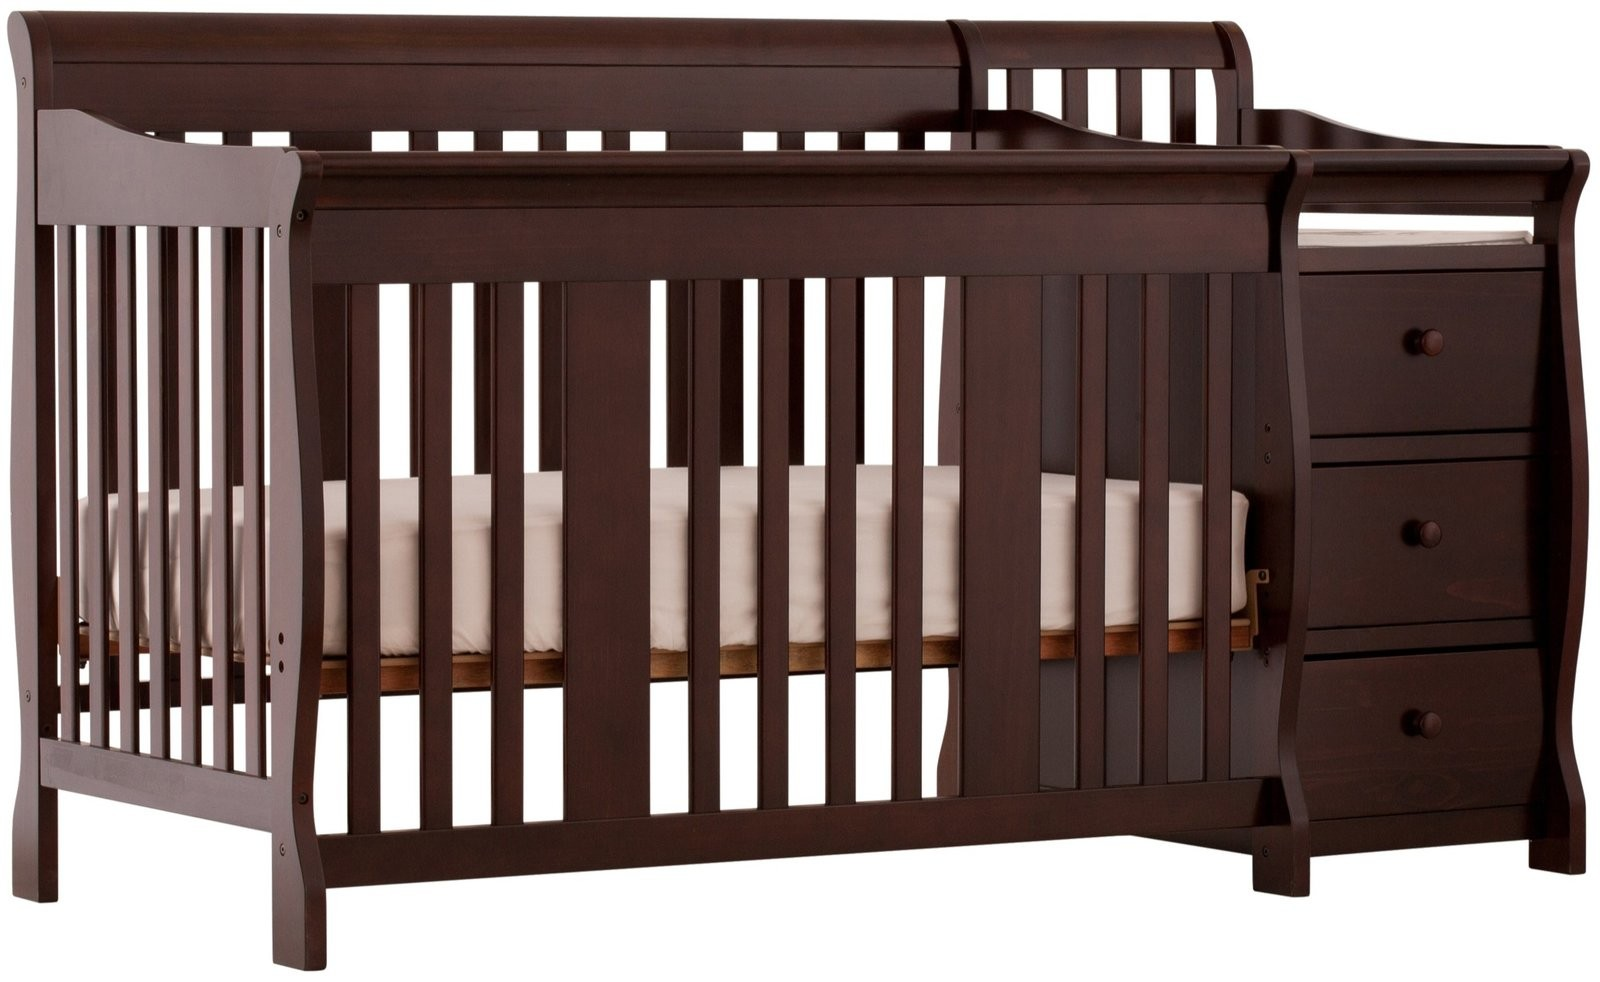 Cheap Baby Cribs Under 100 | Cheap Convertible Baby Cribs | Cheap Cribs